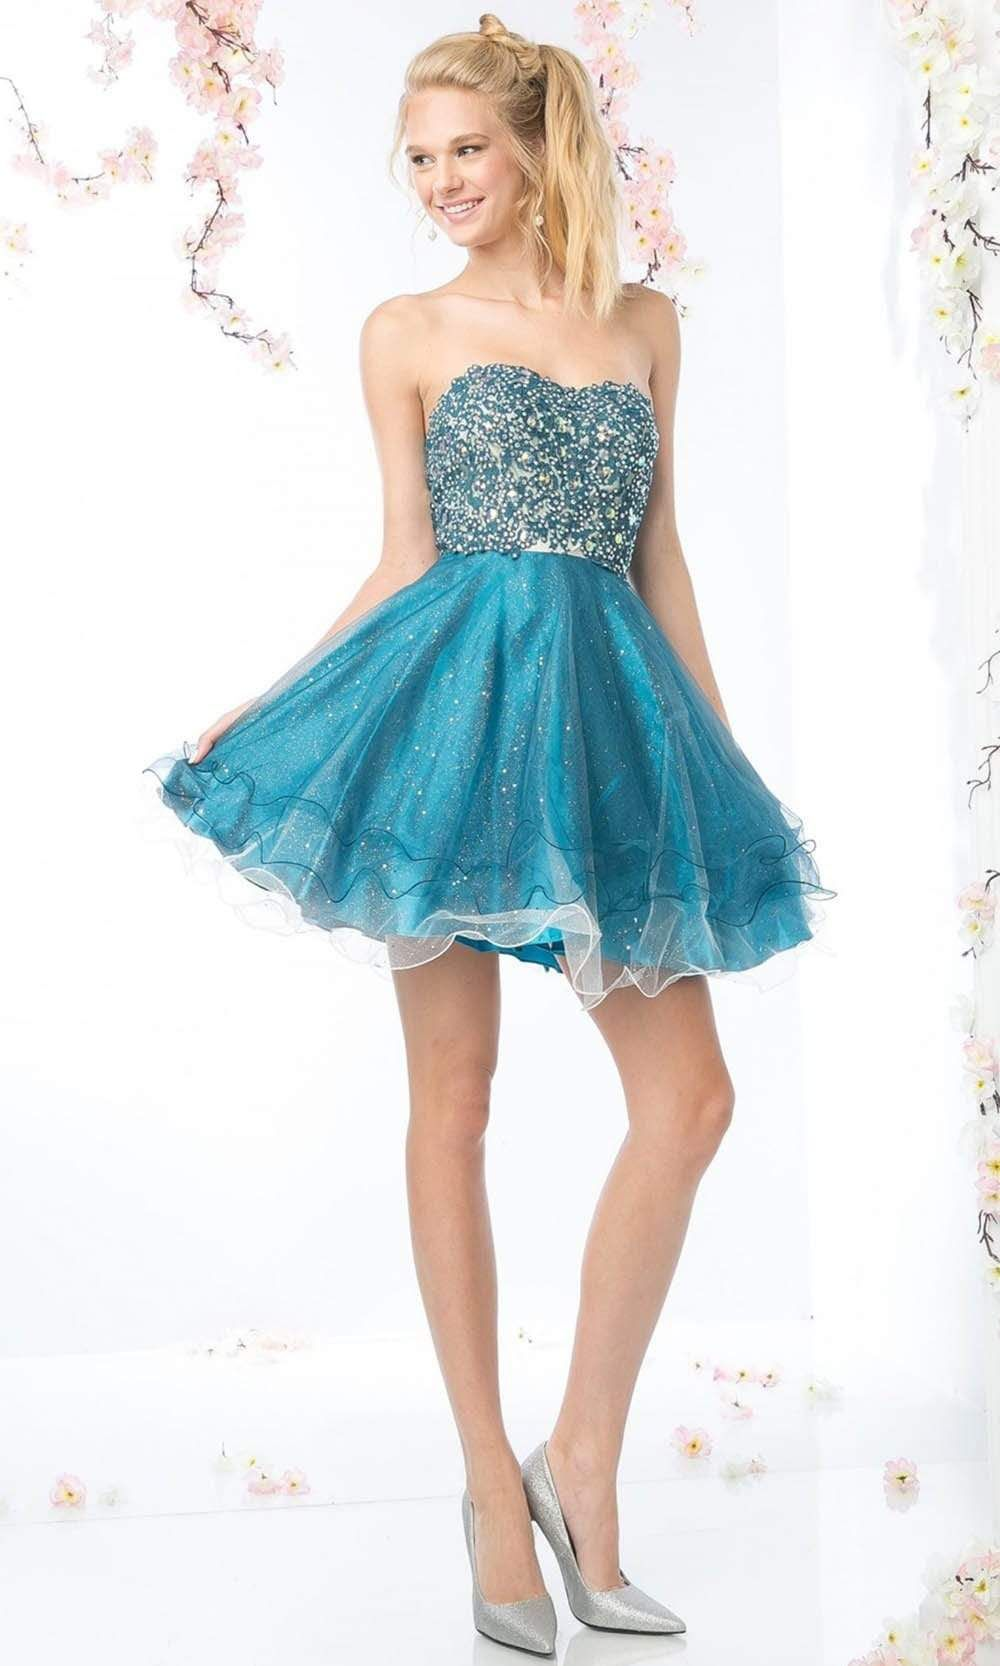 Cinderella Divine 7633 Embroidered Sweetheart A Line Dress Satin Homecoming Dress Homecoming Dresses Short Homecoming Dresses [ 1666 x 1000 Pixel ]